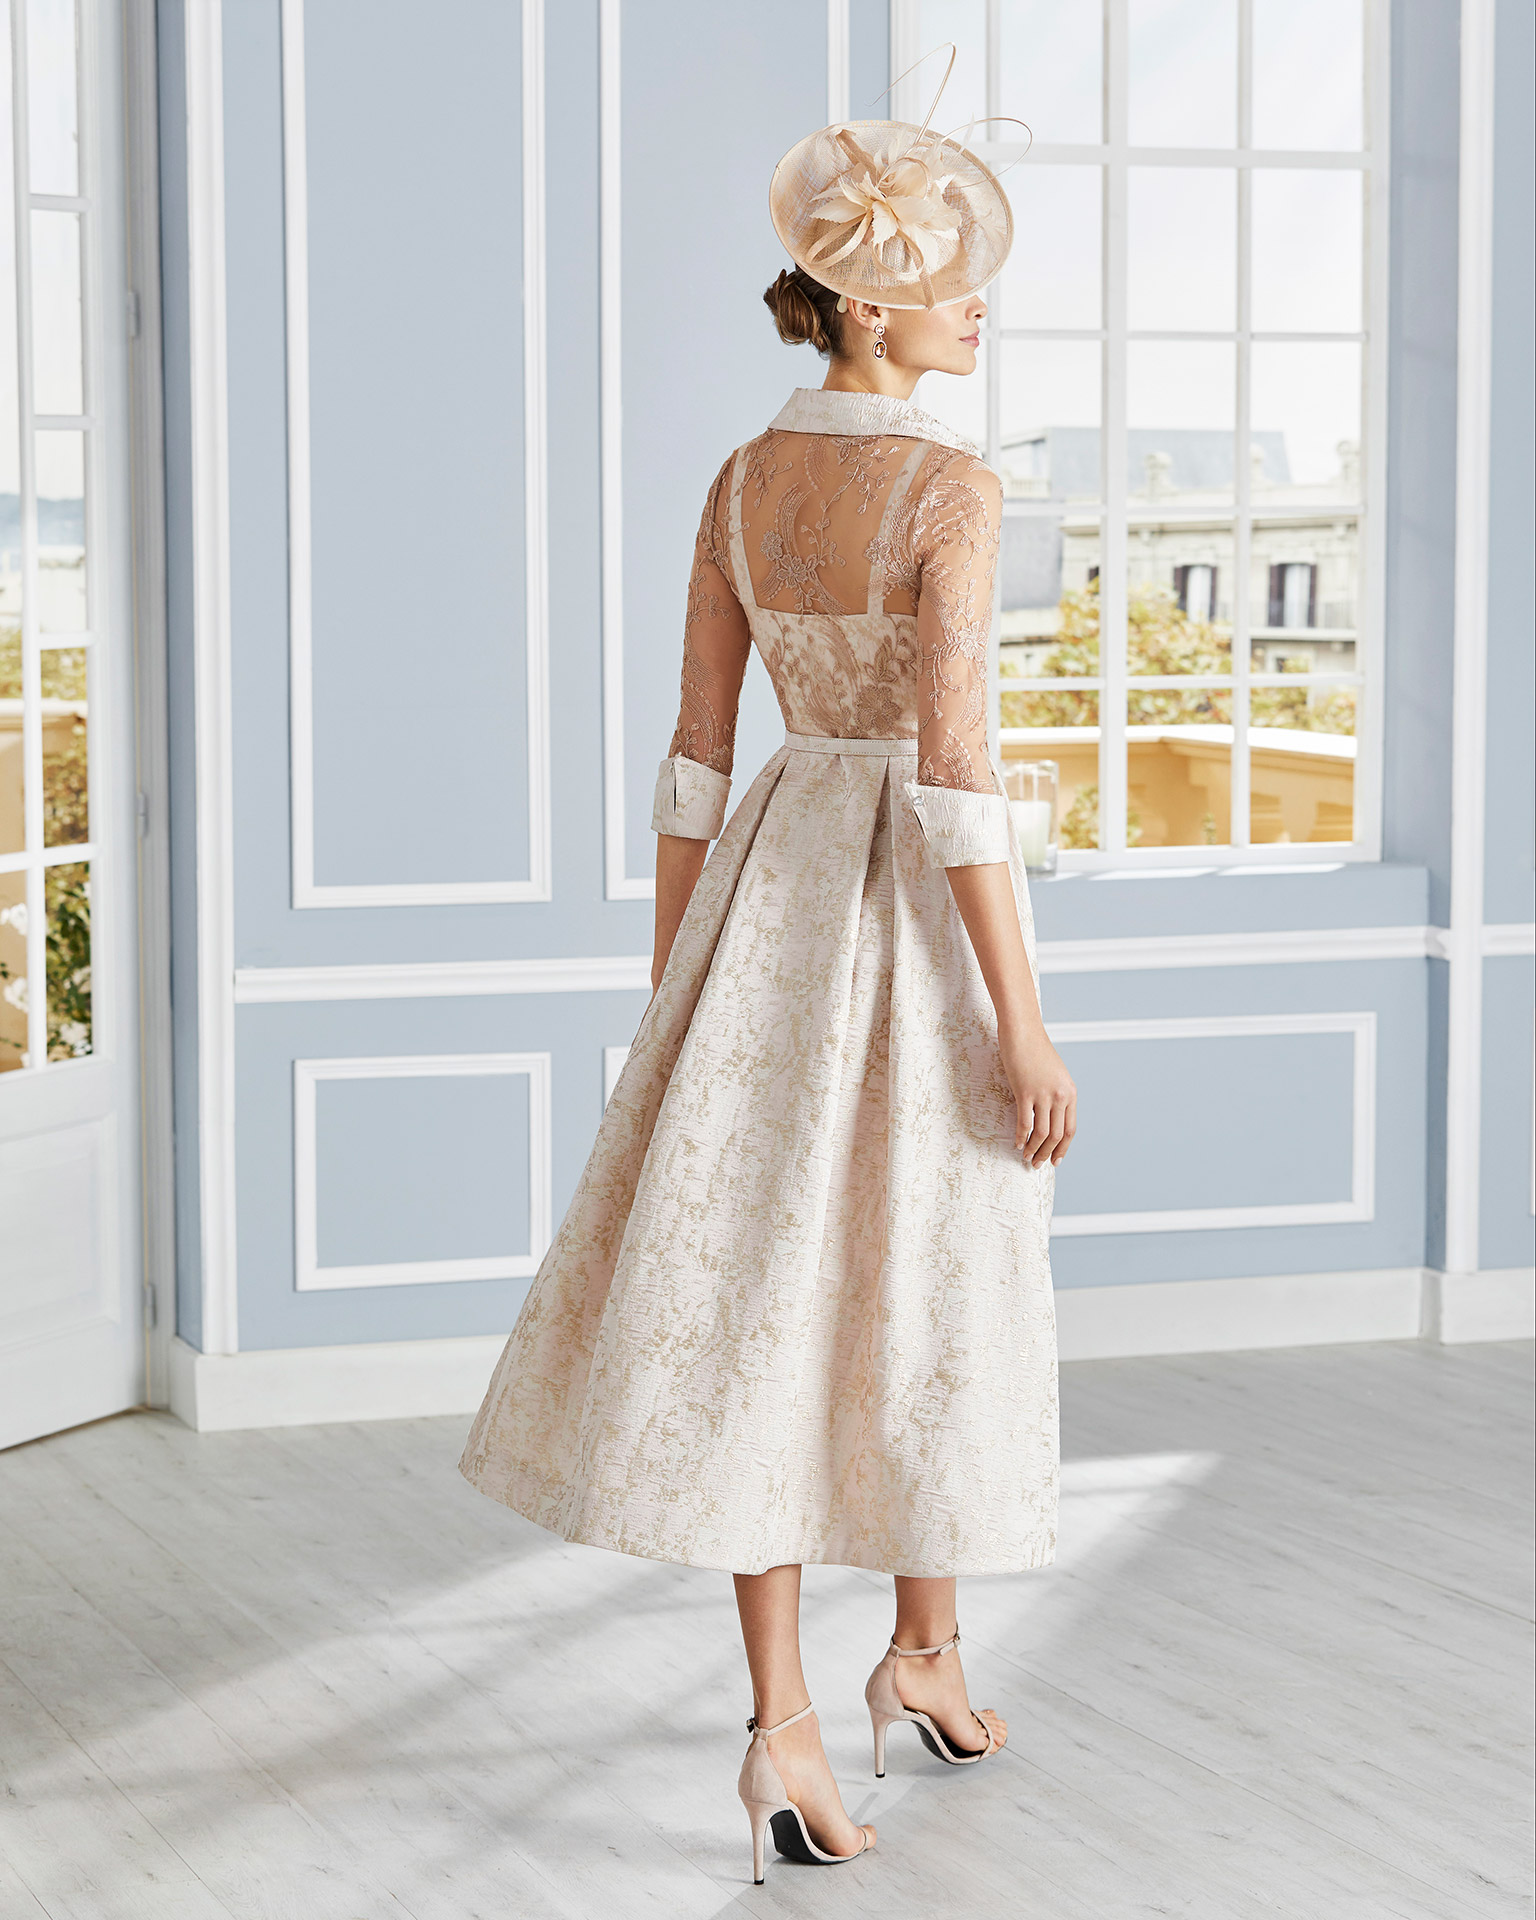 Cocktail dress in brocade with lace on the bodice. Button collar neckline and three-quarter sleeves. 2020 COUTURE CLUB Collection.